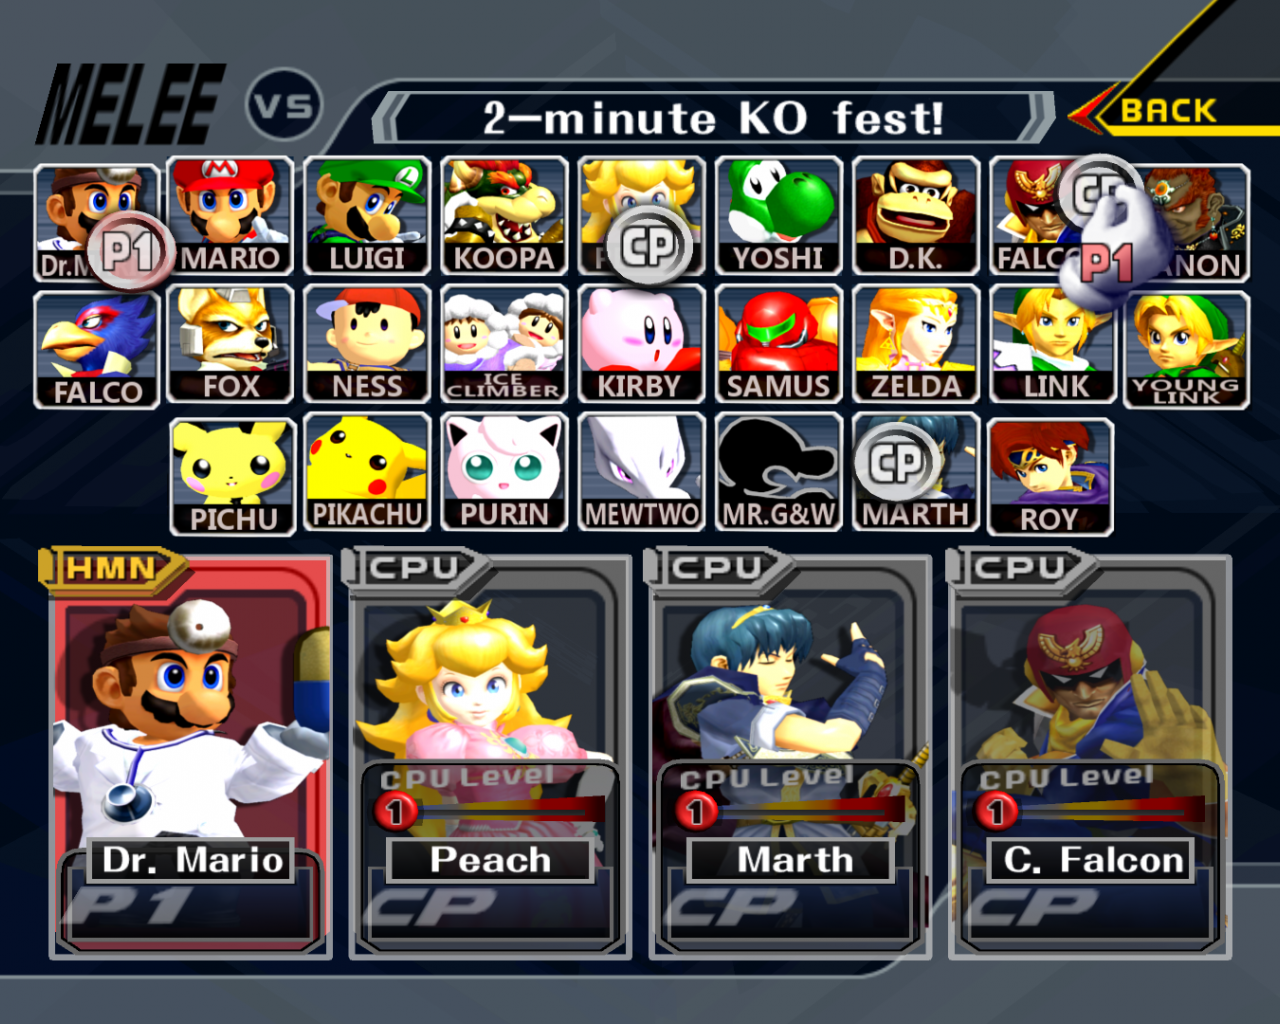 Free Download Super Smash Bros Melee Wallpaper 1920x1080 Super